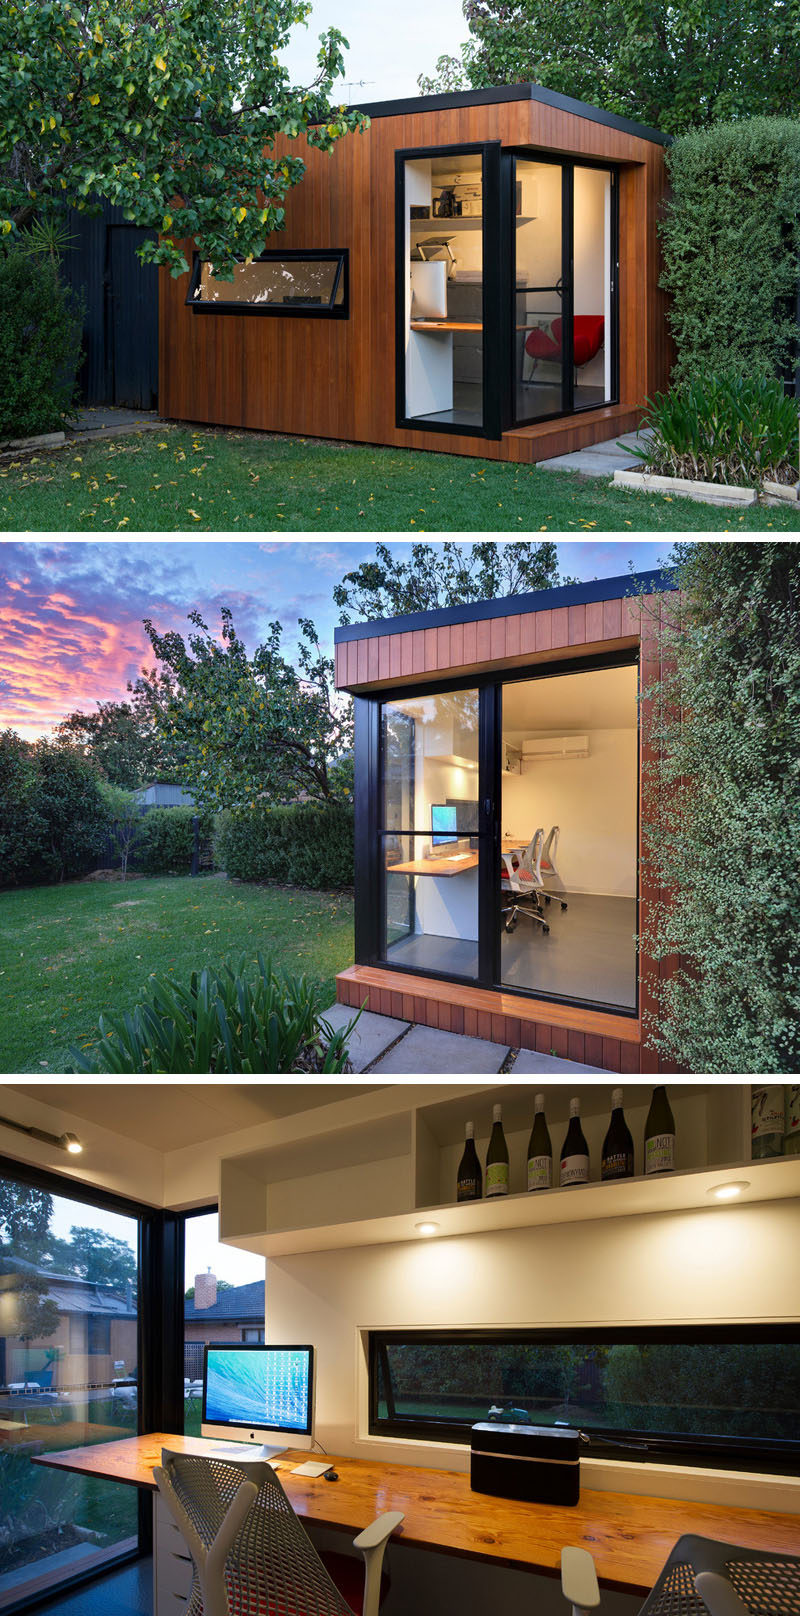 Superieur This Prefab Backyard Home Office Is Covered In Wood And Black Trim  Surrounds The Windows And Sliding Door.